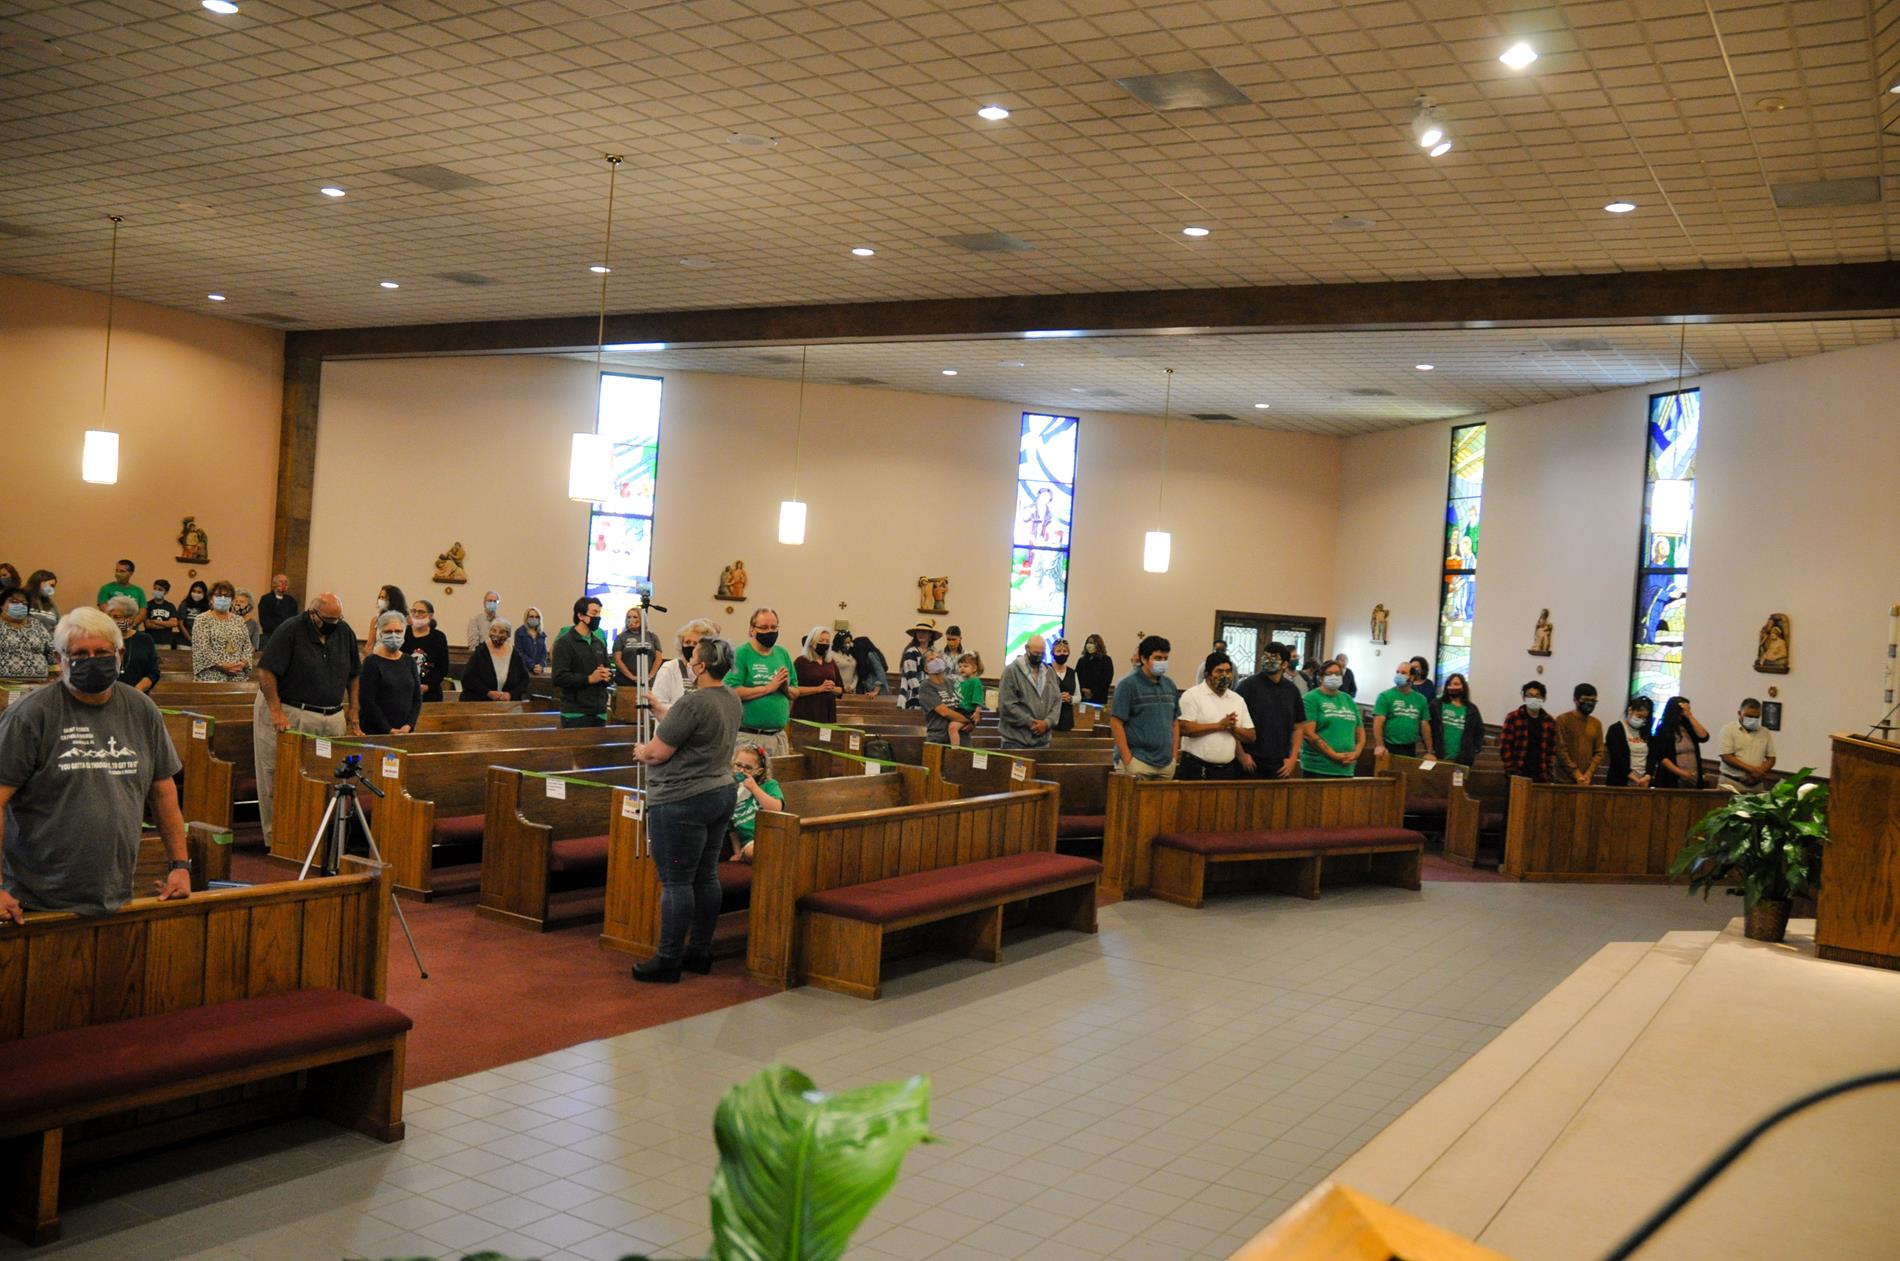 A glimpse of the congregation